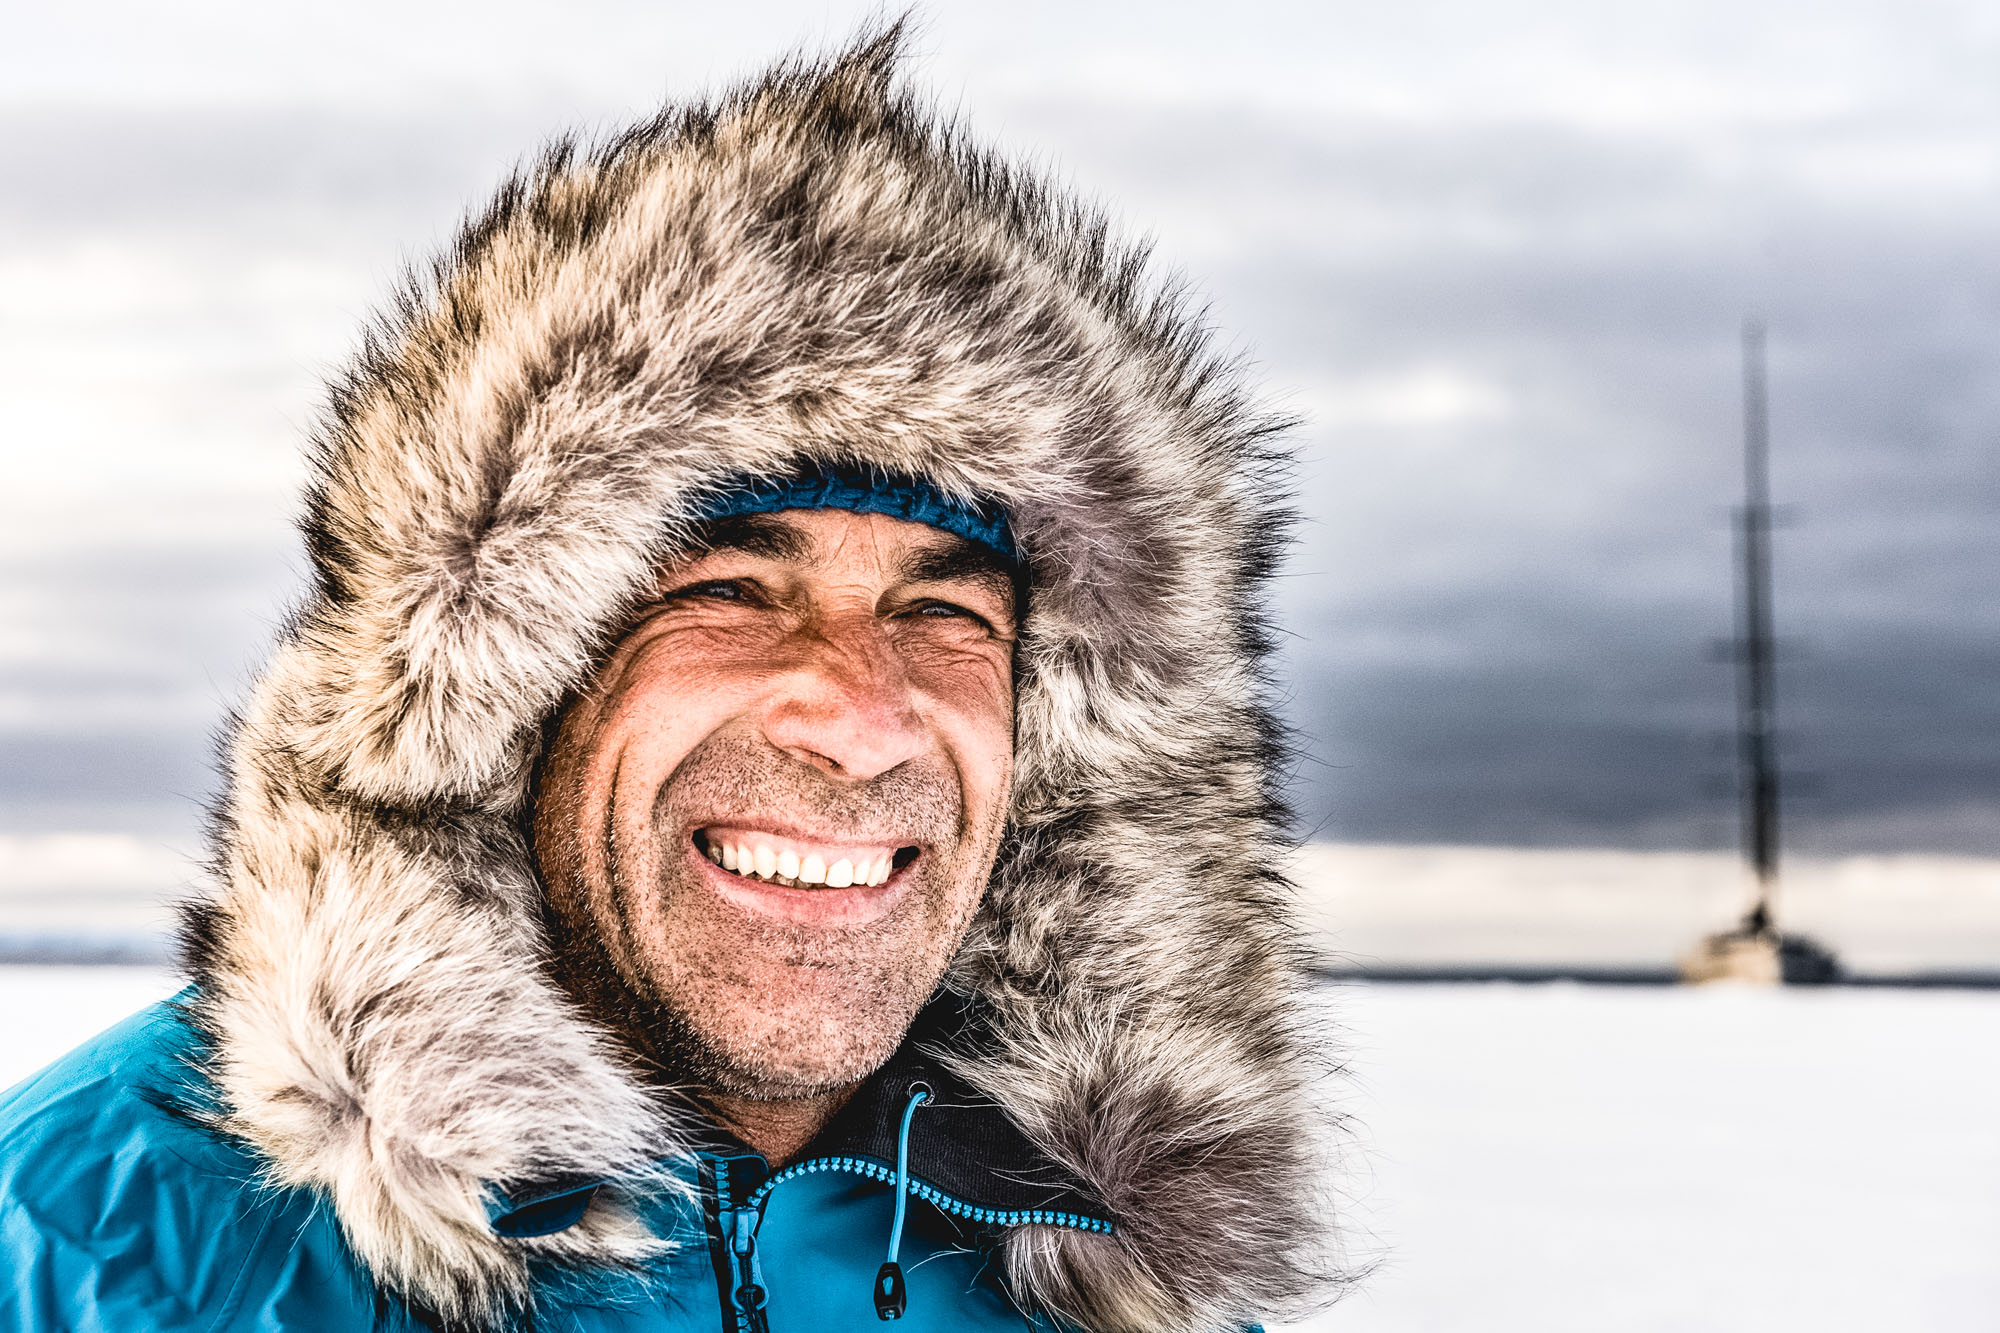 POLE2POLE expedition. Pangaea sailing in Antarctica. Arriving to the Antarctica.Mike Horn testing his kite.